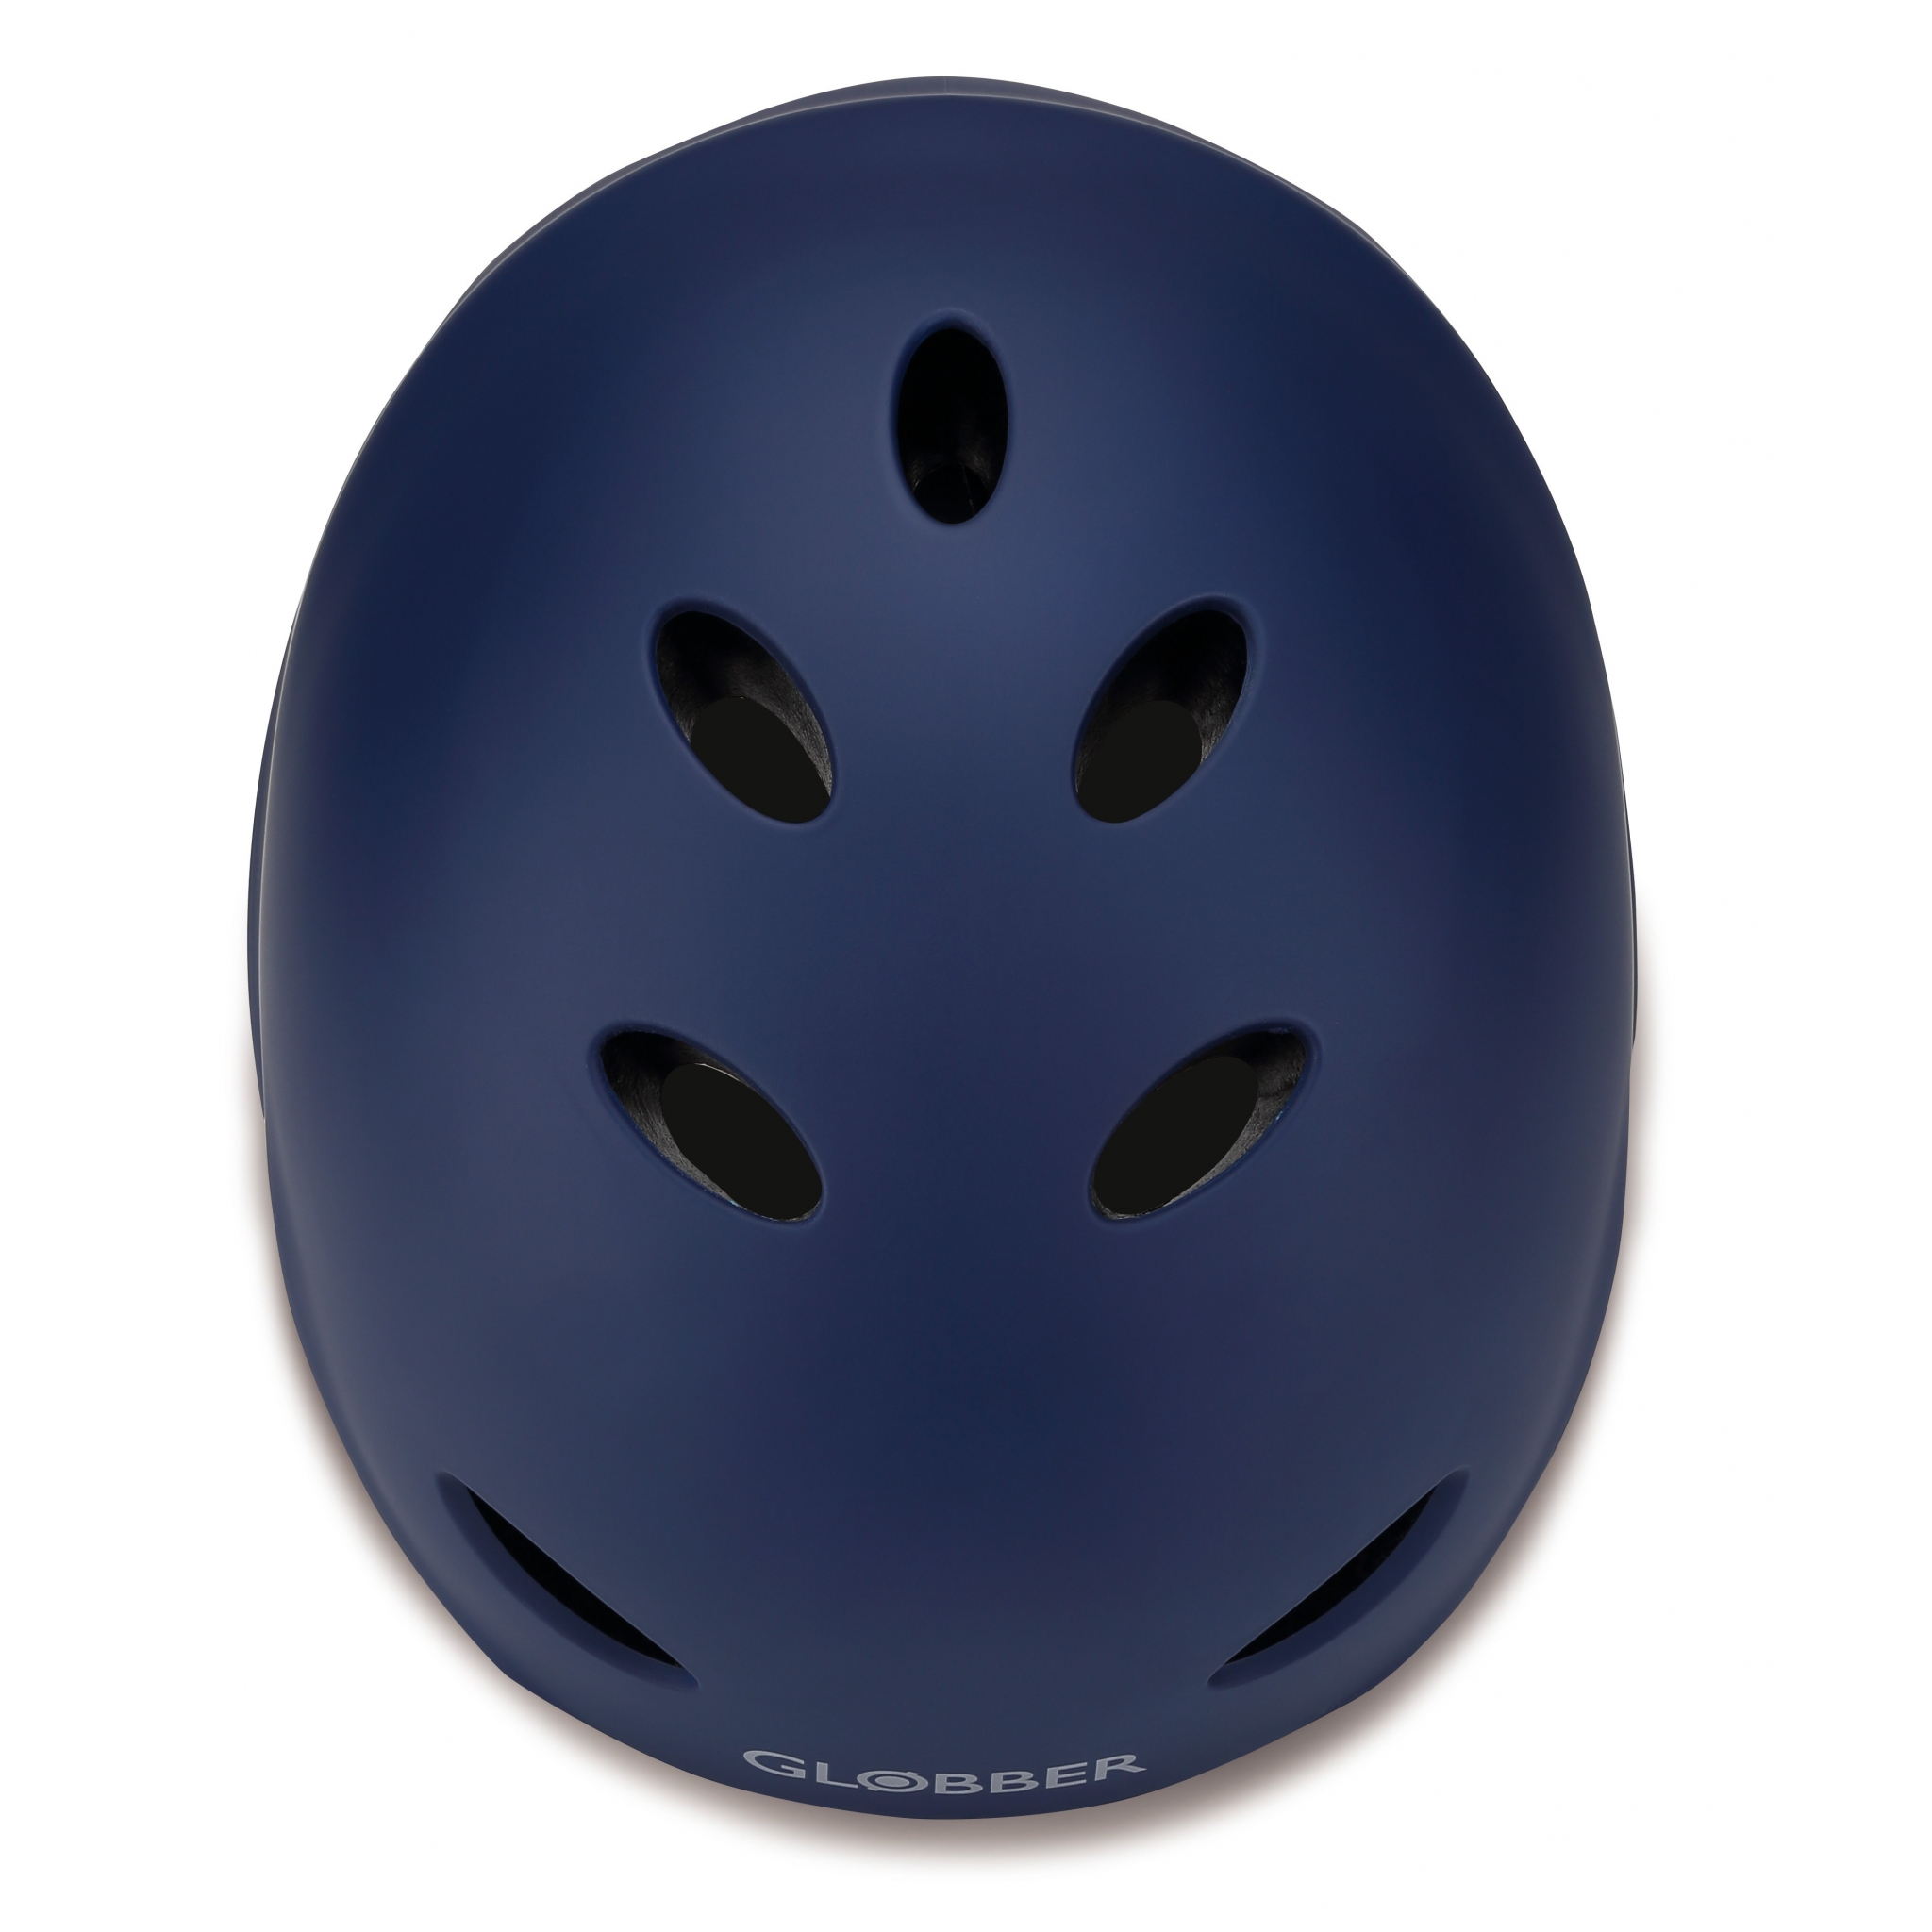 scooter helmet for adults - Globber 1